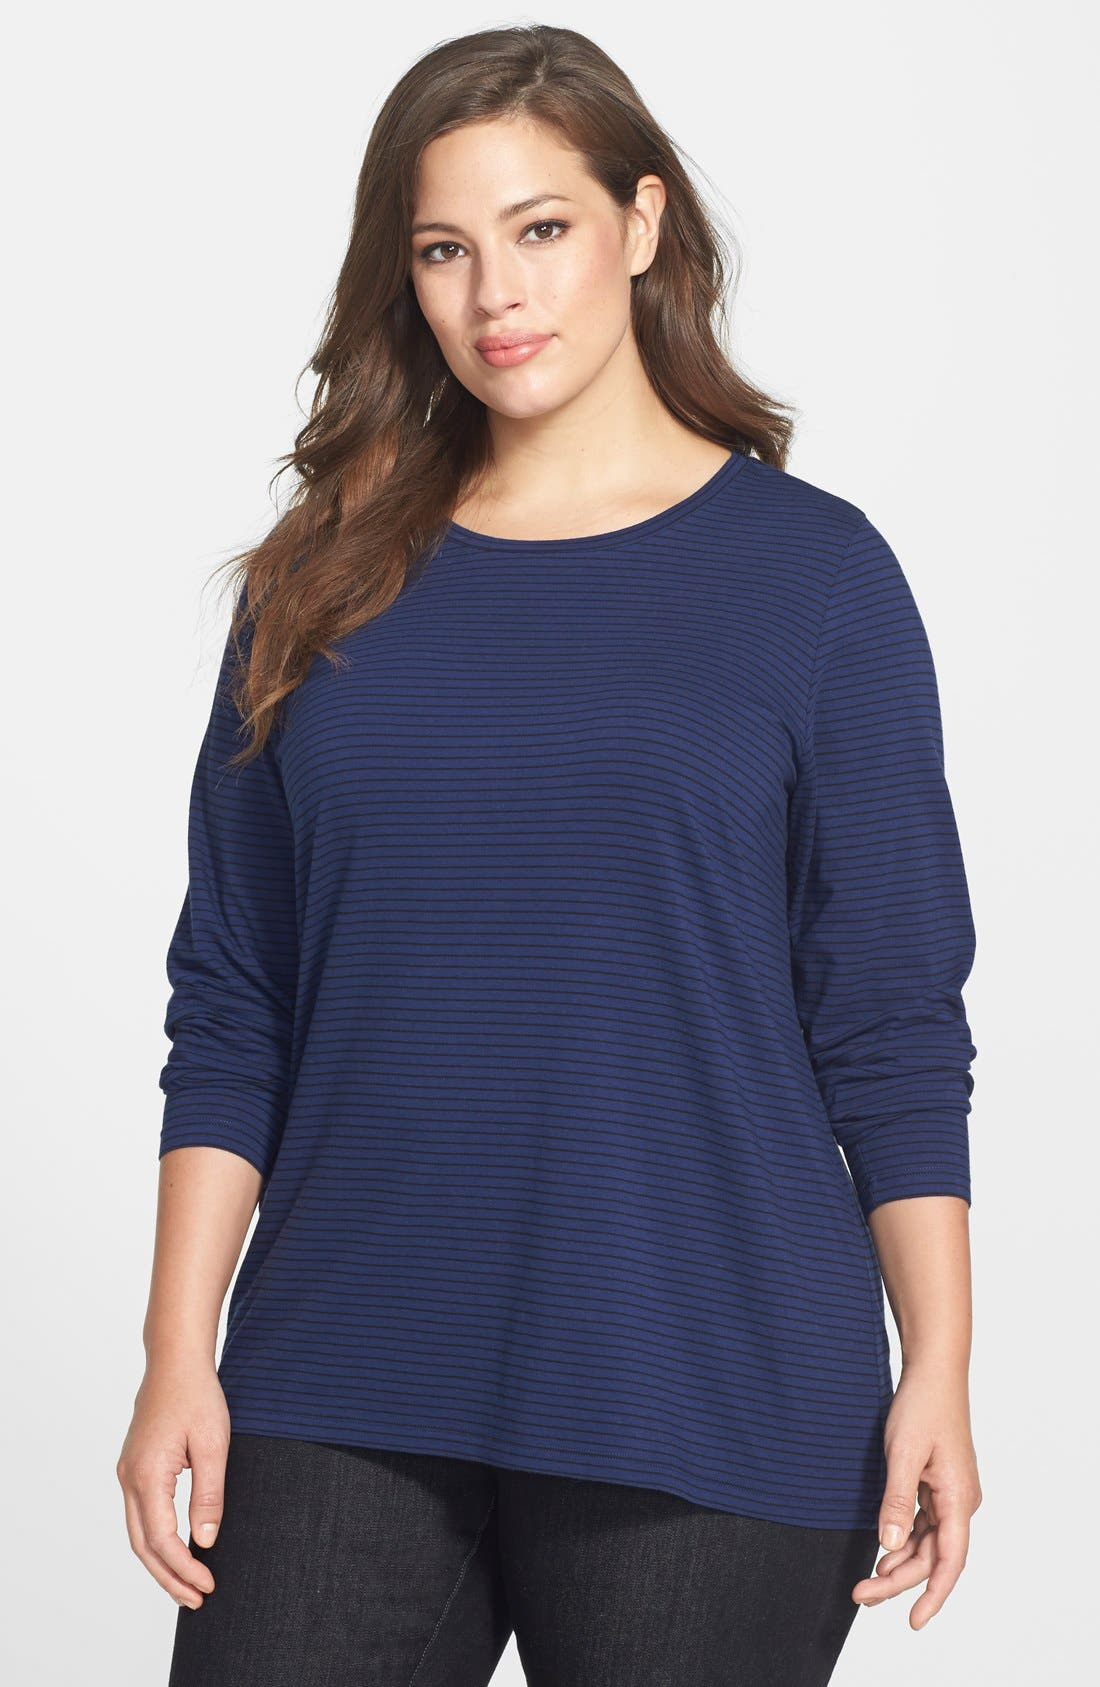 Alternate Image 1 Selected - Sejour Stripe Jersey Tee (Plus Size)